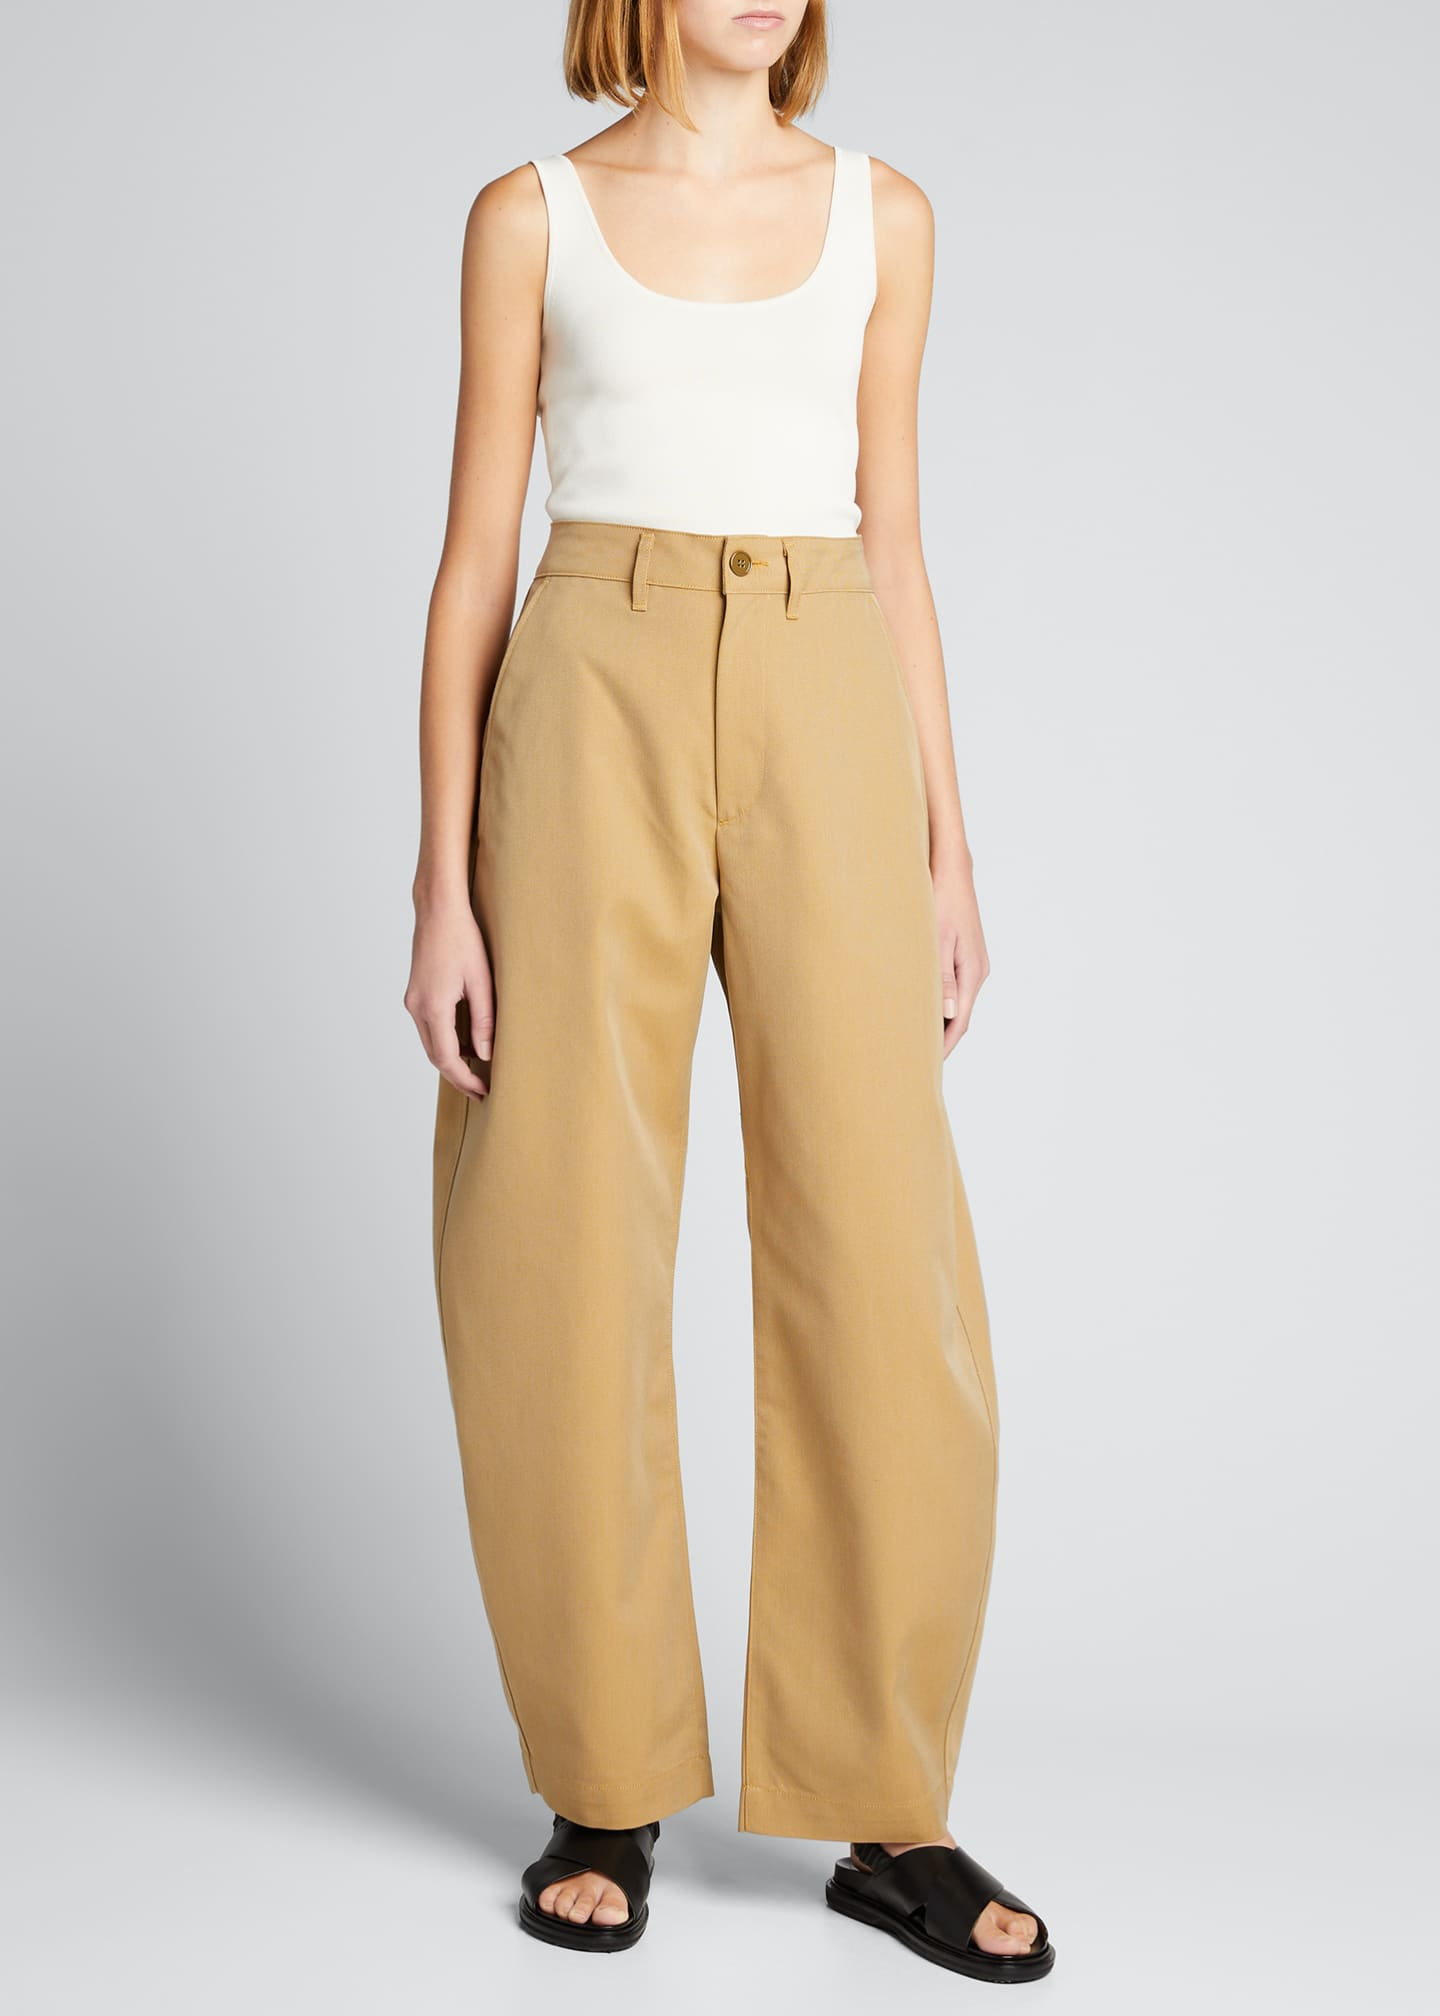 Image 1 of 5: The Low Curve Trousers